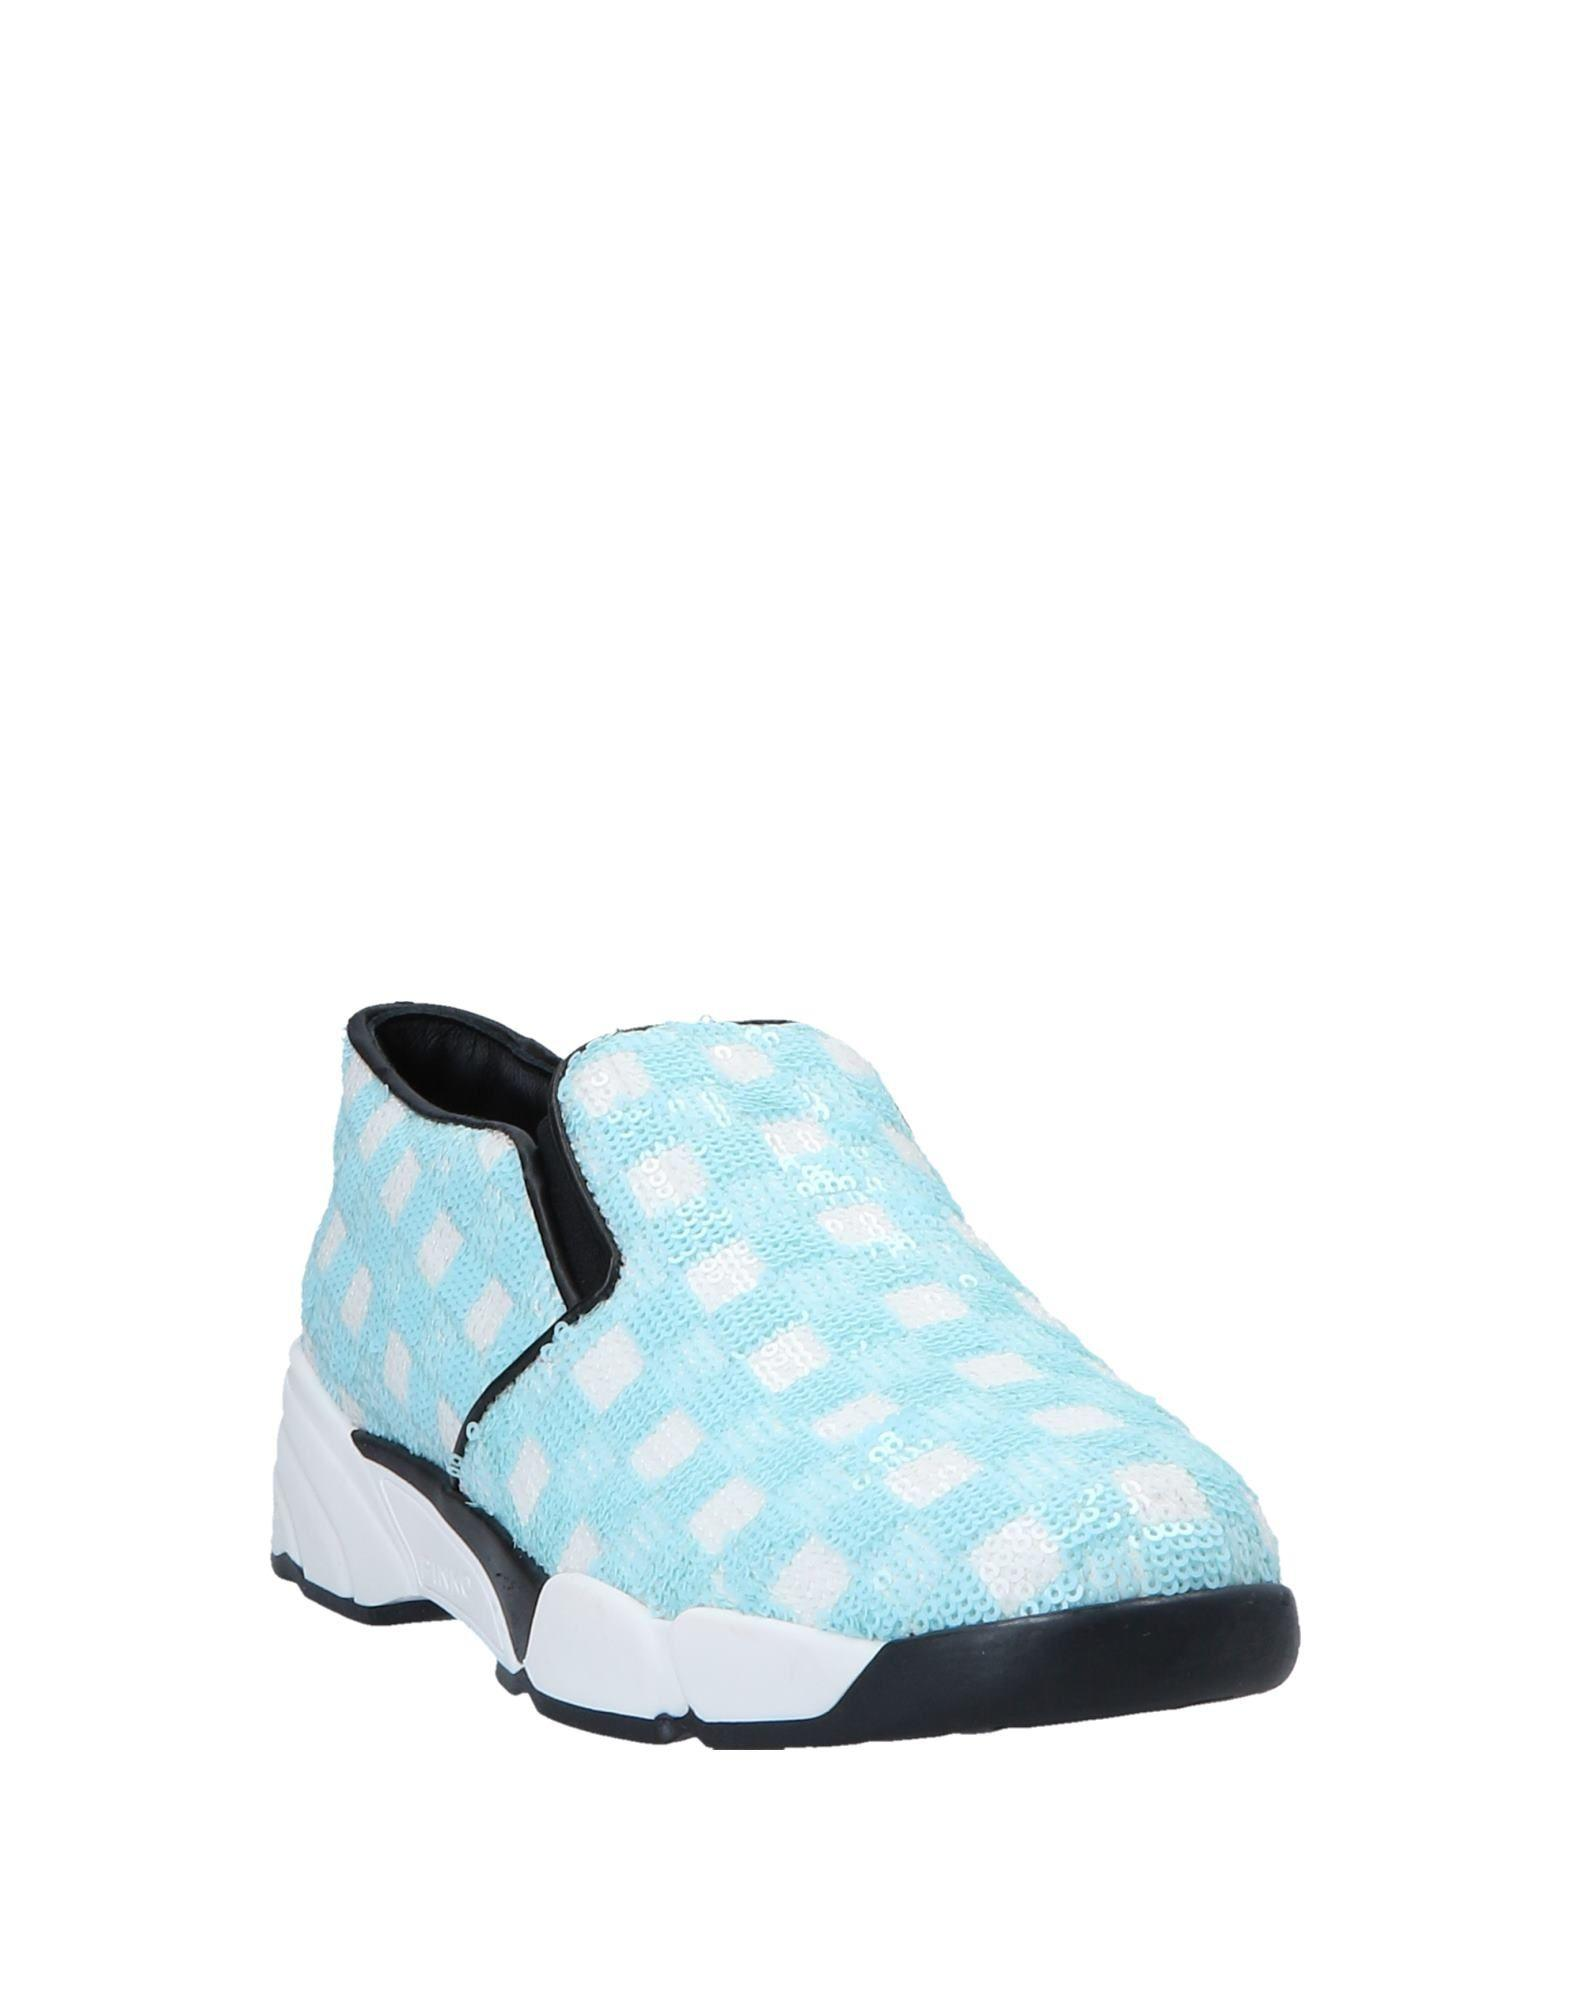 Pinko Leather Low-tops & Sneakers in Azure (Blue)